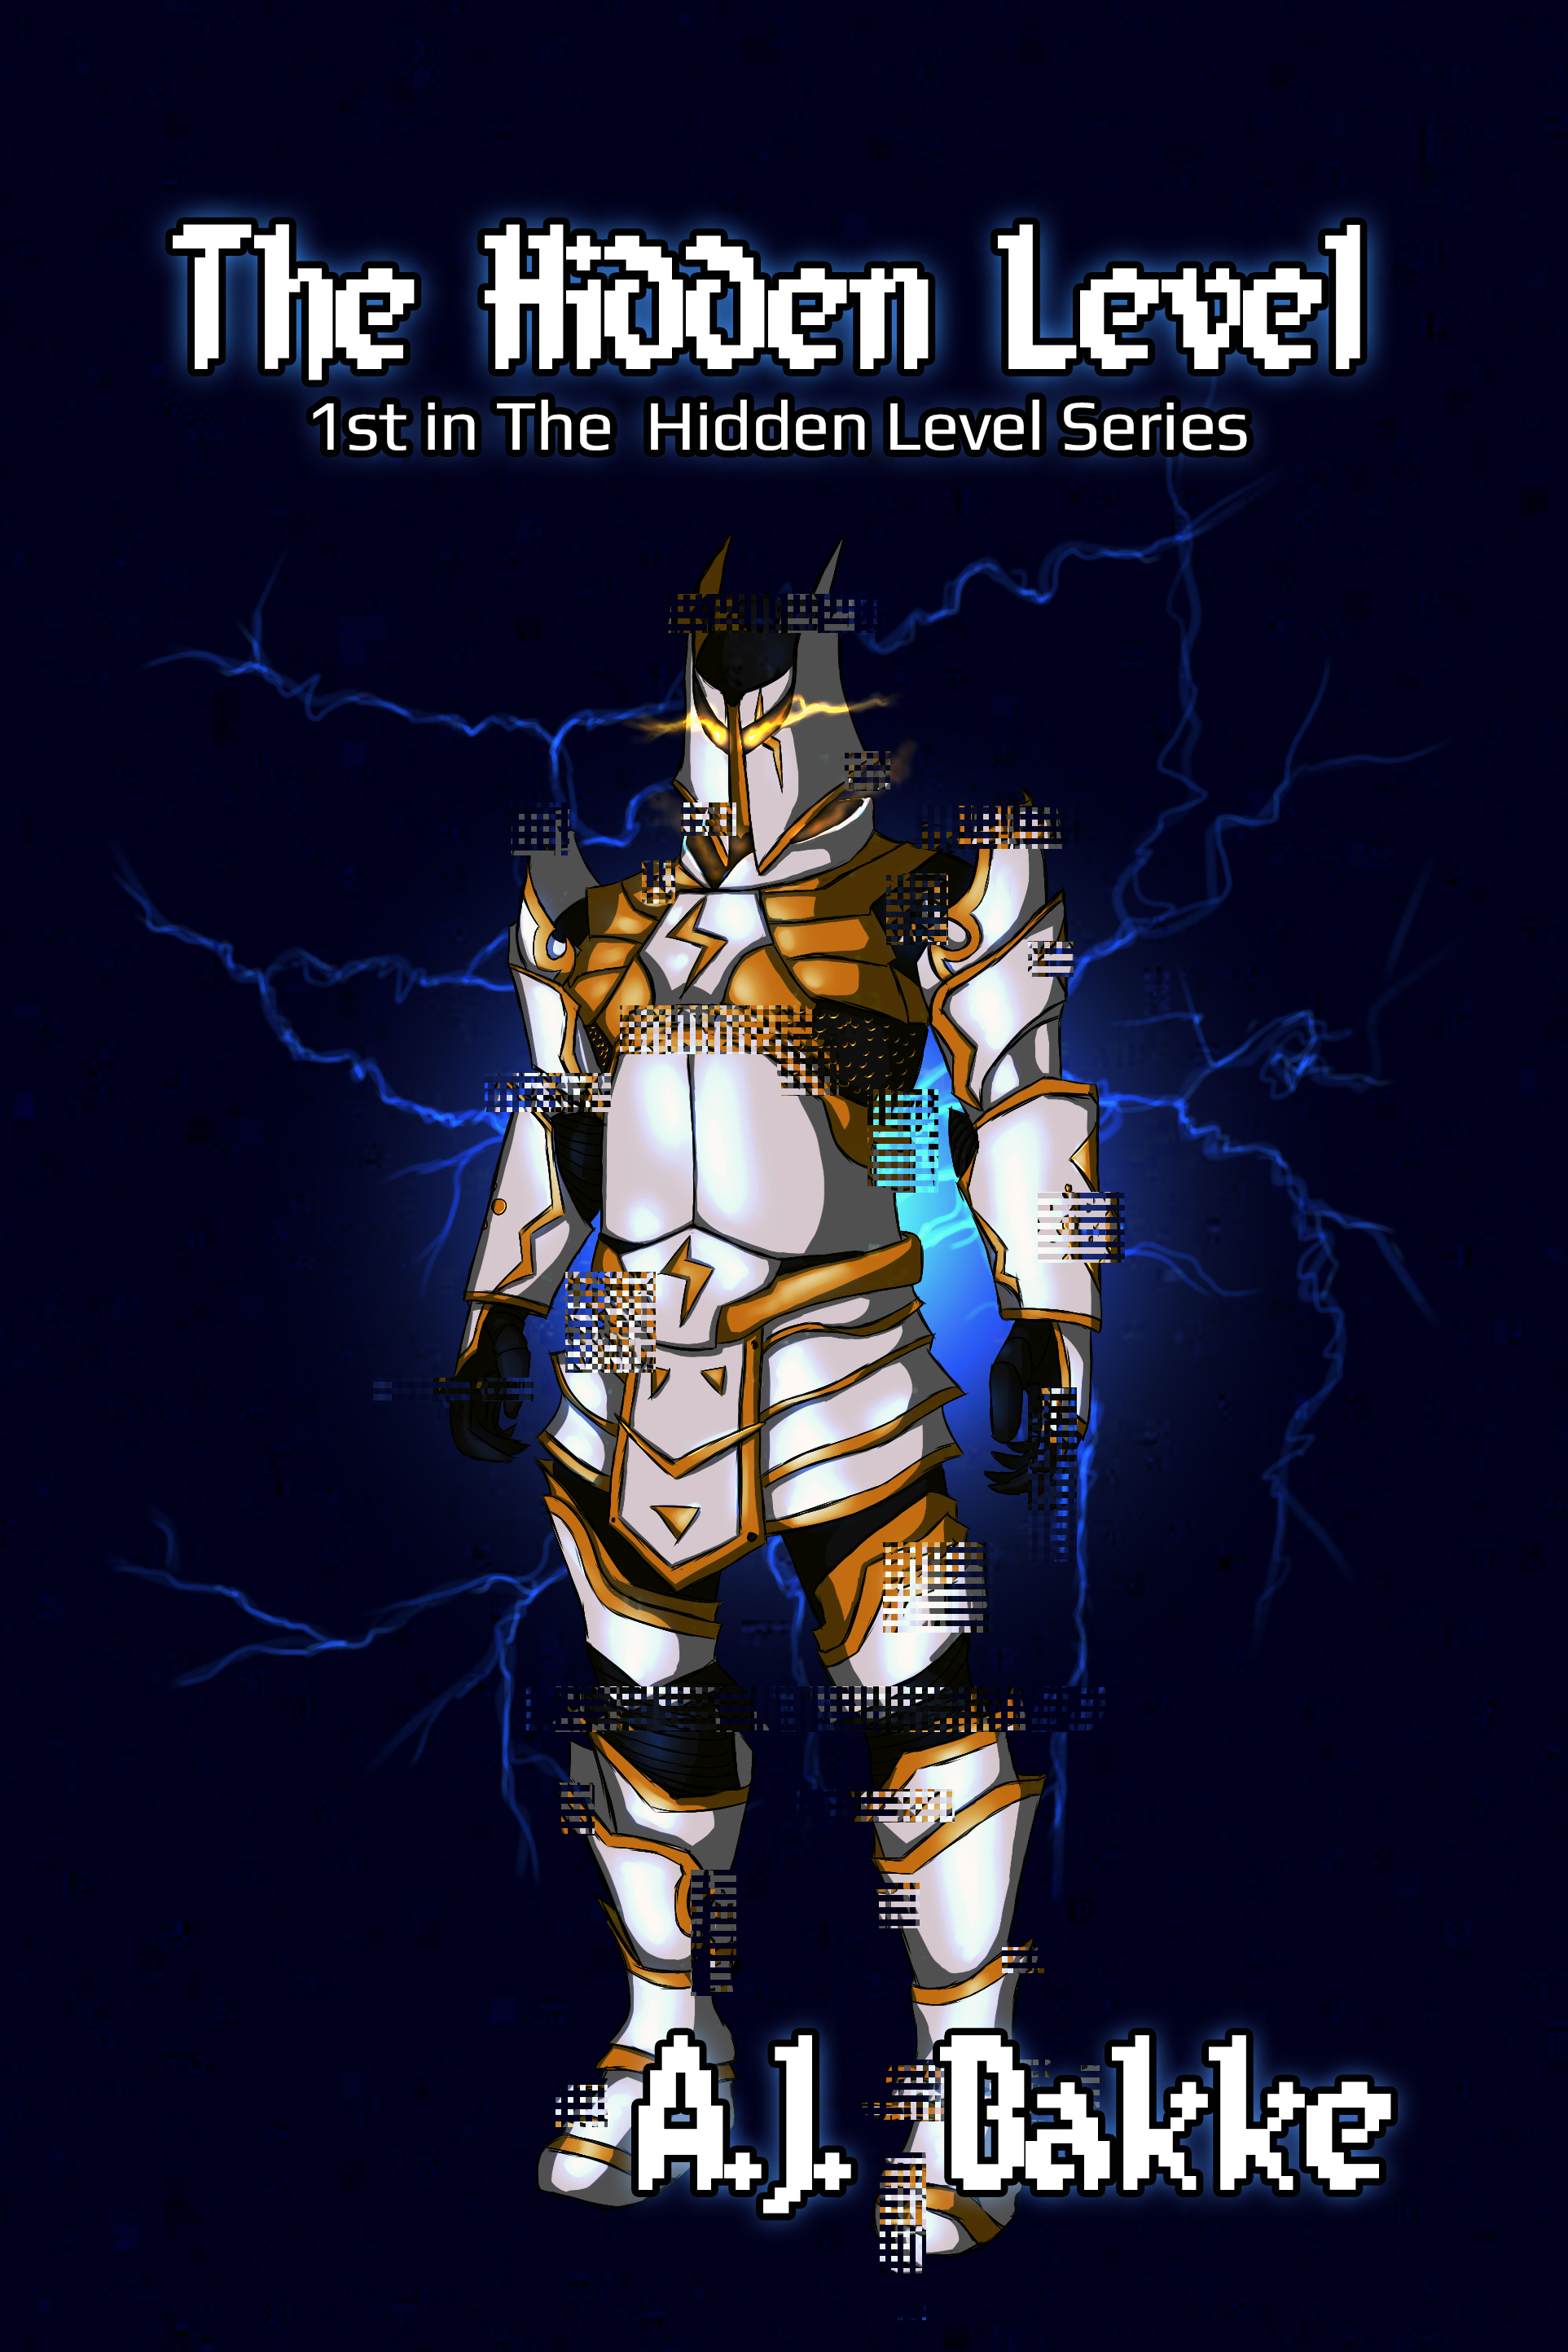 The Hidden Level 1 Cover